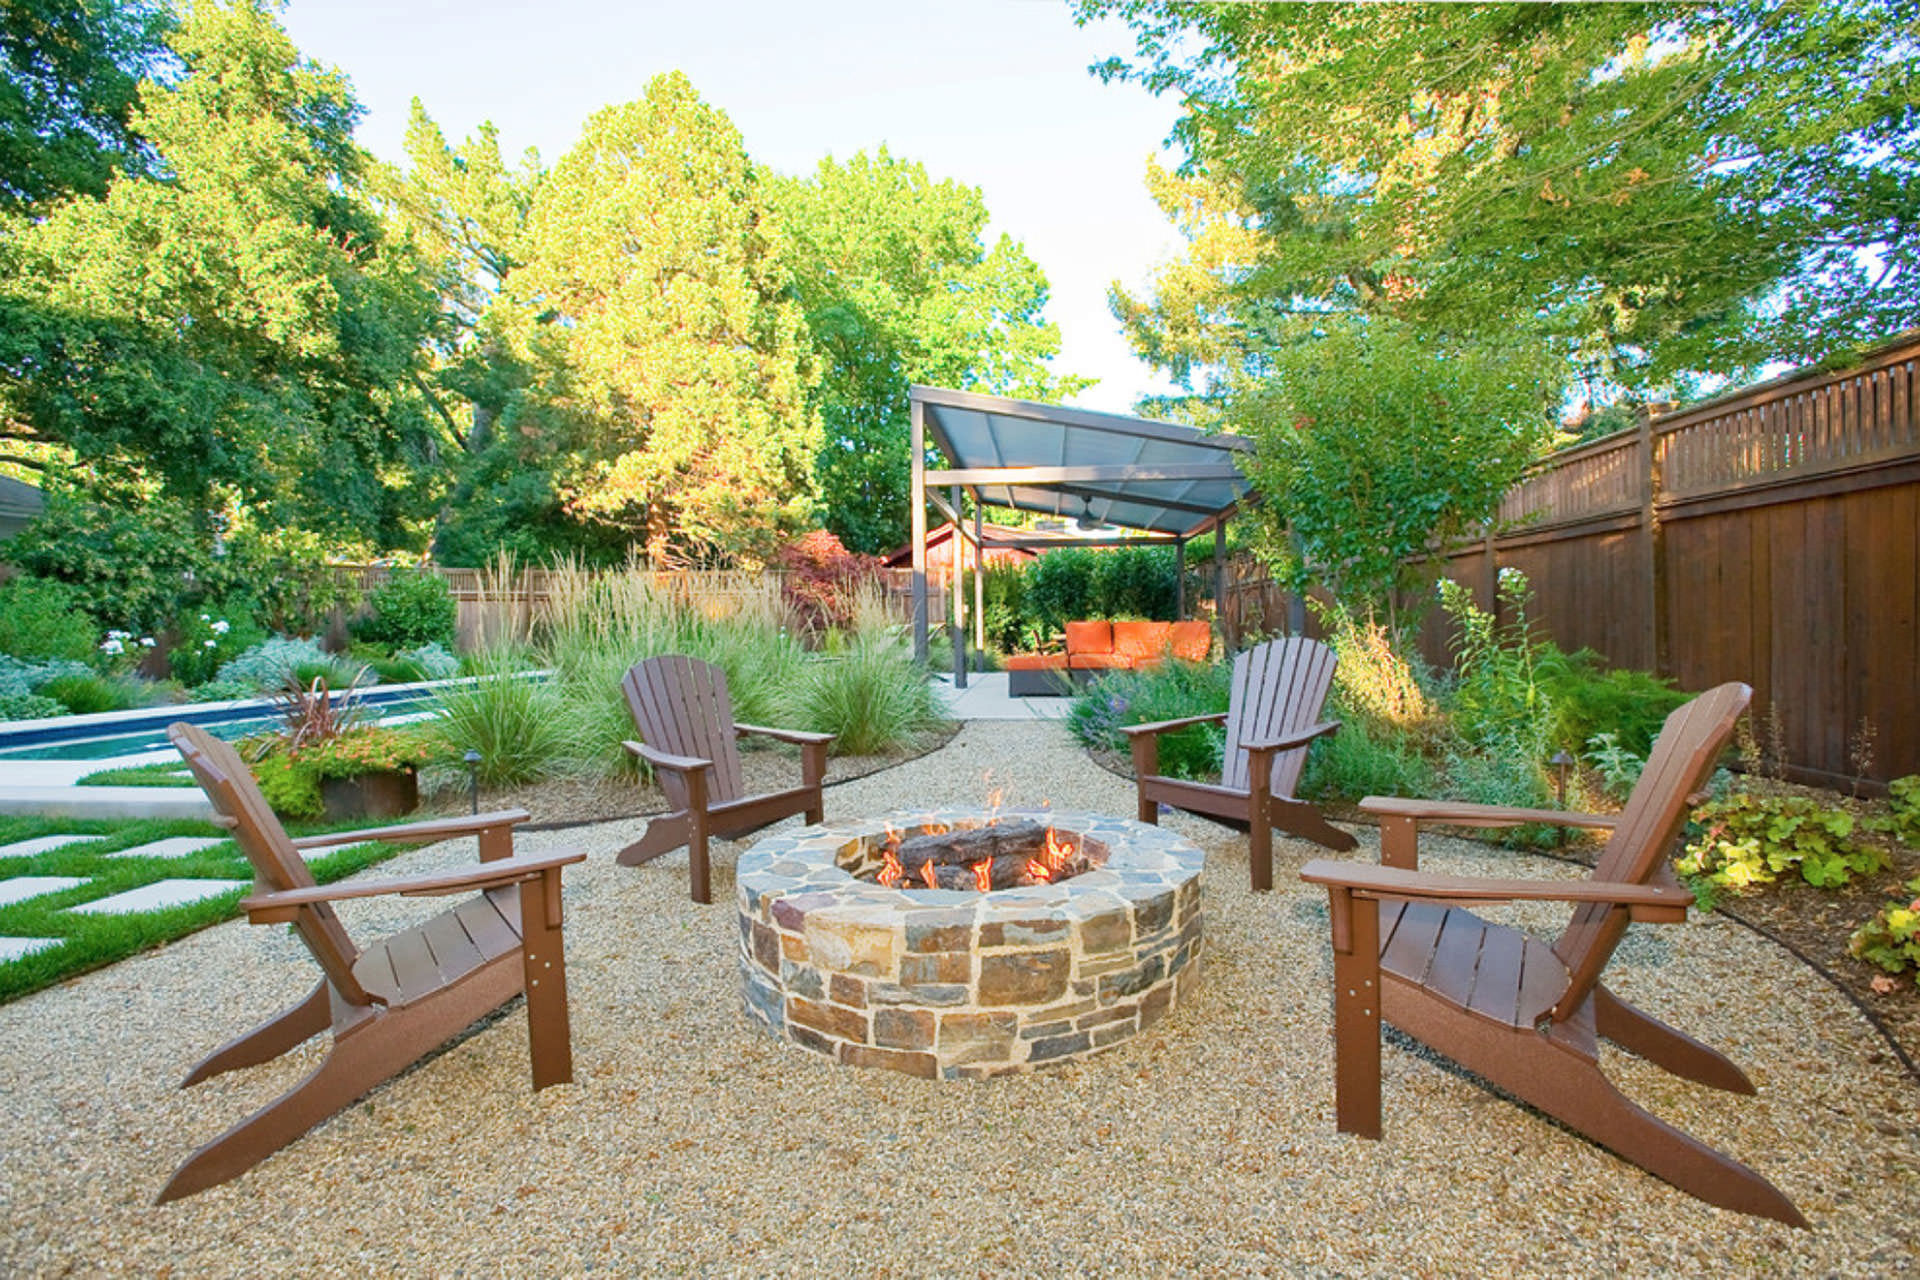 Outdoor patio ideas on pinterest pea gravel patio pea for Backyard design ideas